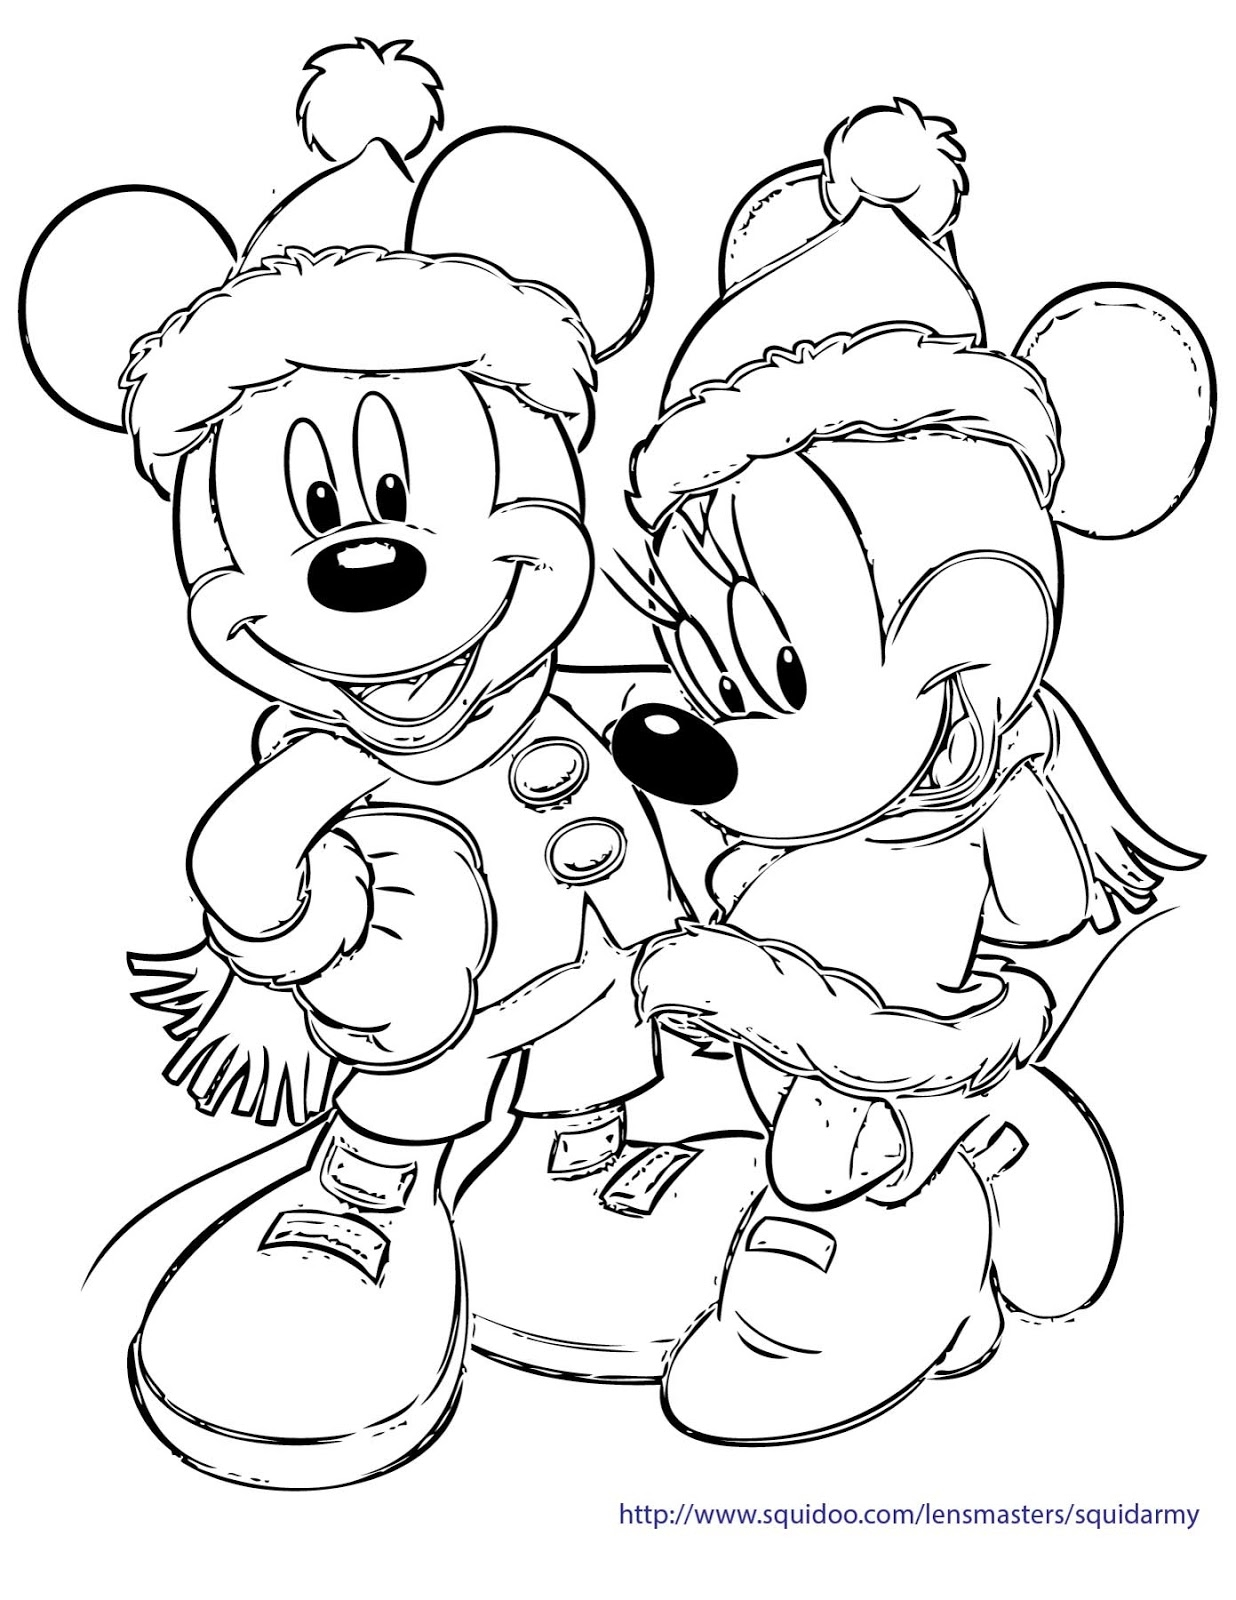 mickey mouse coloring pages christmas mickey mouse merry christmas coloring pages mouse coloring mickey pages christmas